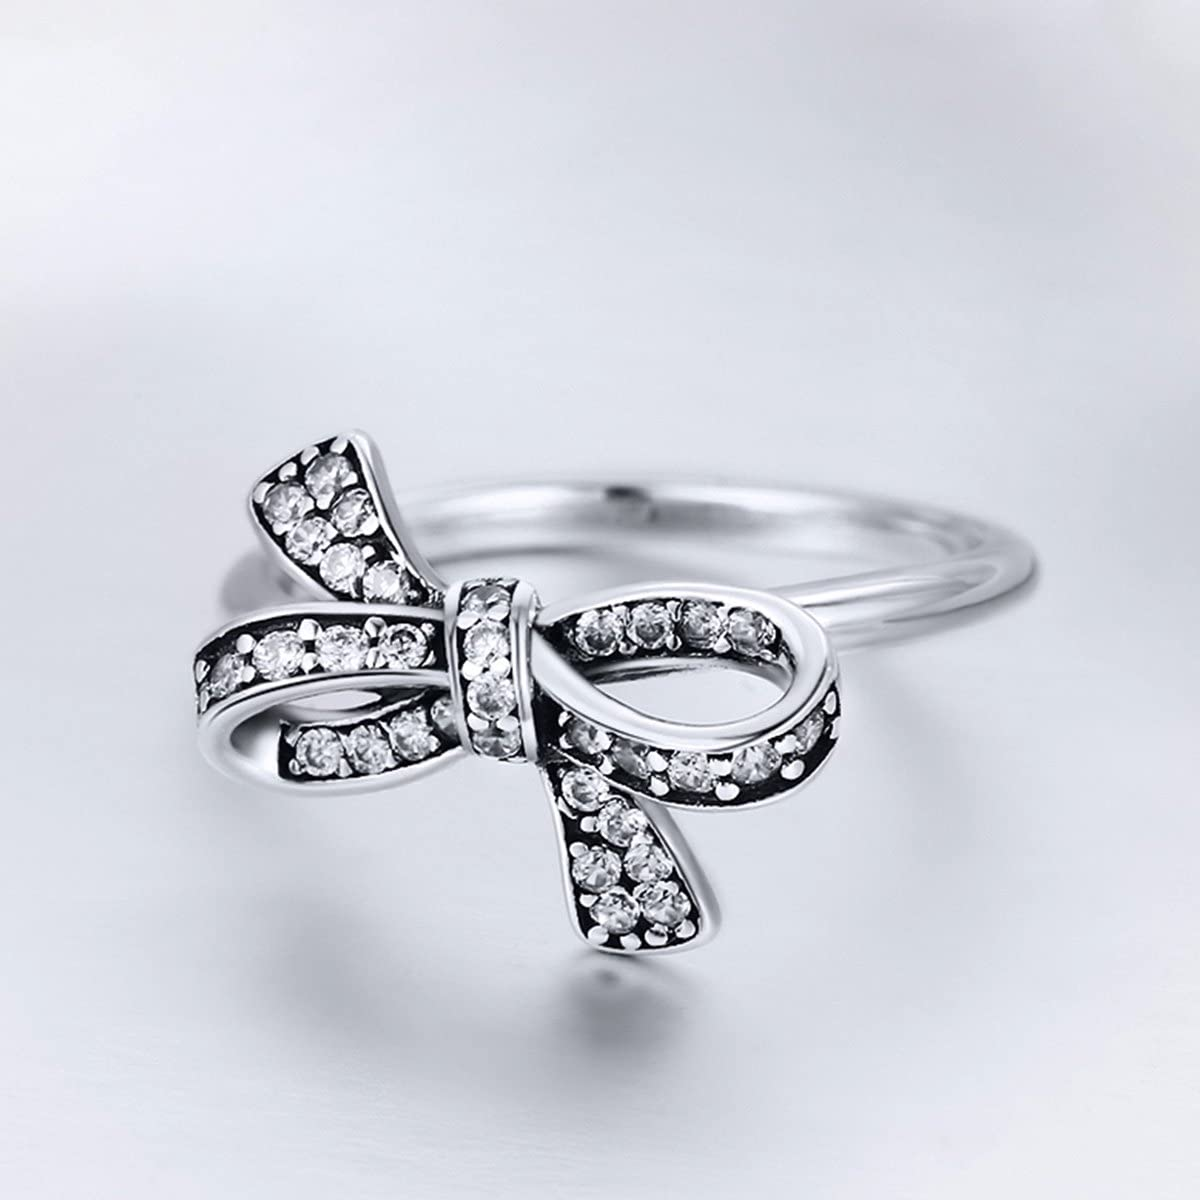 Everbling Bowknot 925 Sterling Silver Ring Clear CZ